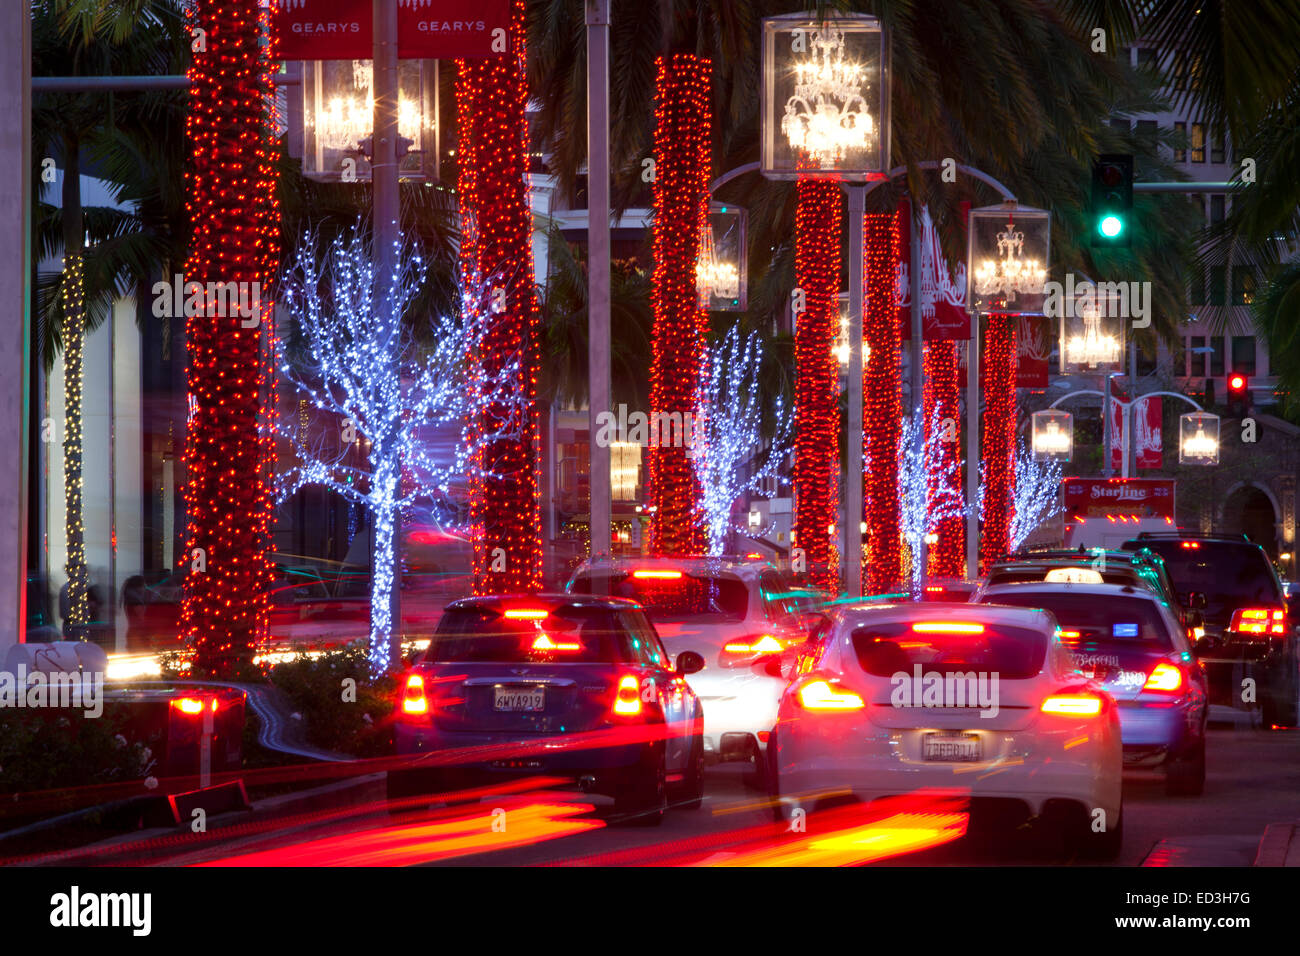 Christmas Decorations Rodeo Drive Beverly Hills California United Stock Photo Alamy